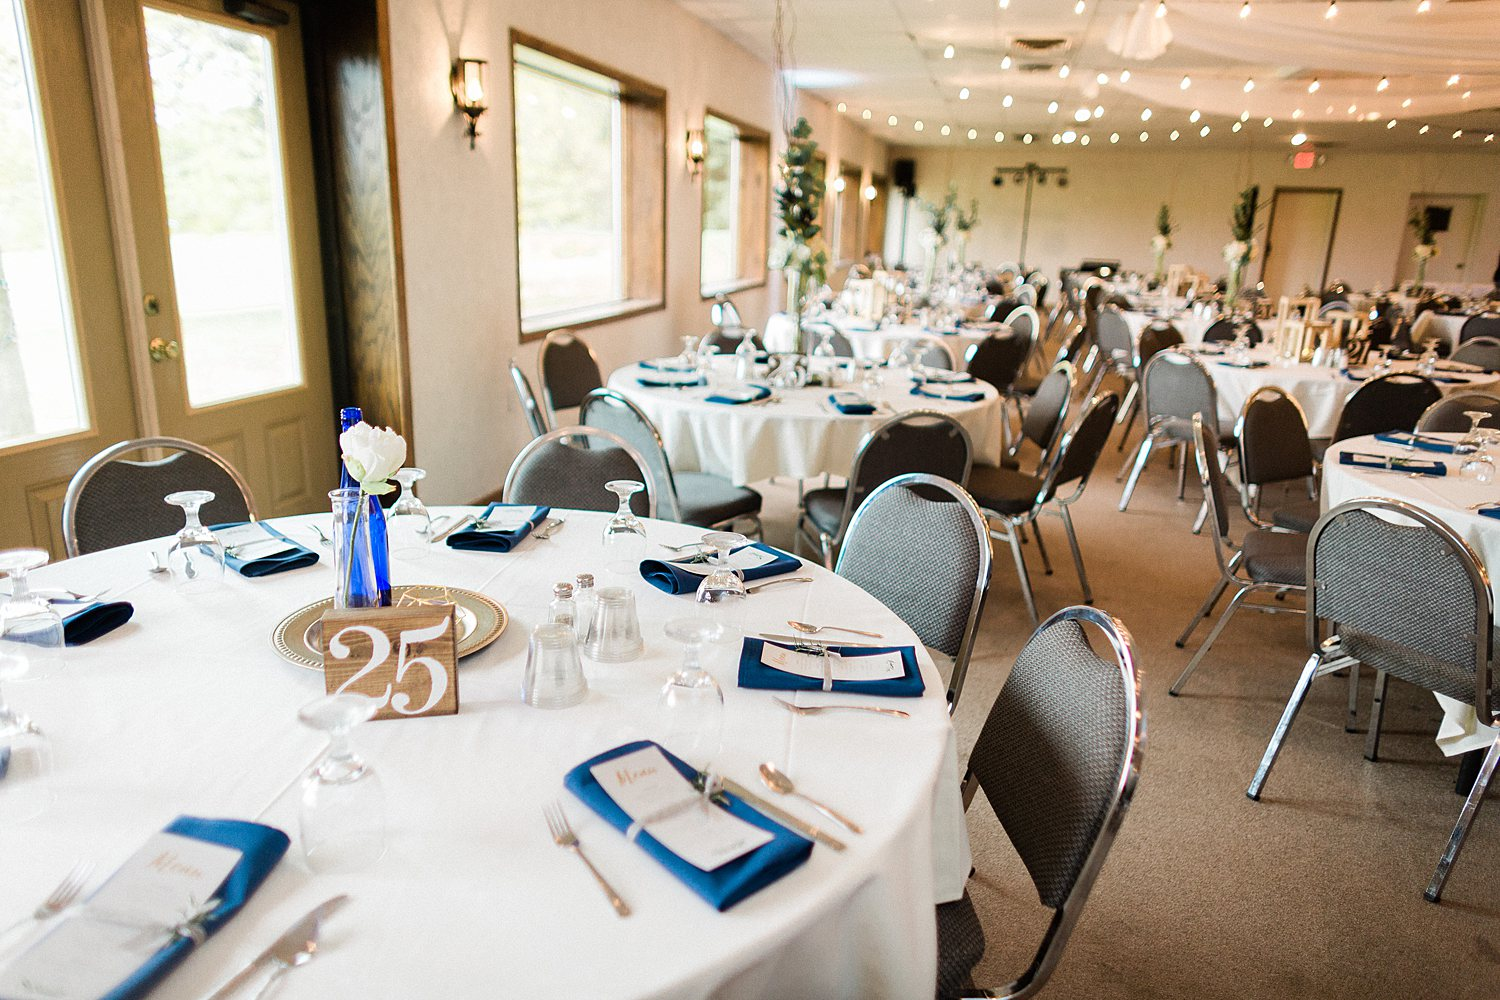 North_Central_Wisconsin_Event_Wedding_Venues_Fall_Weddings_The_Bailiwick_Venue_James-Stokes-Photography090.jpg